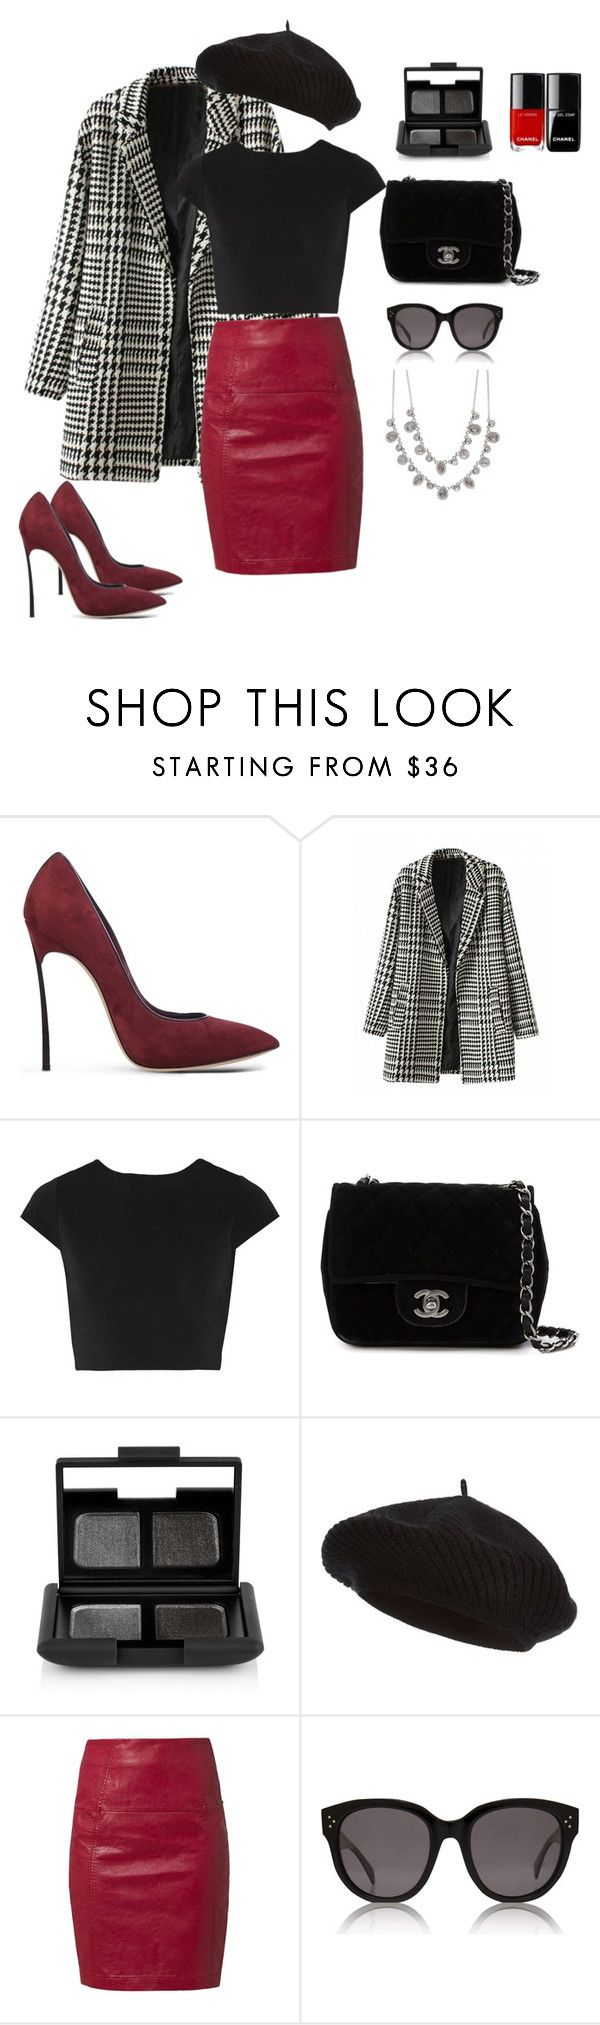 """"" by sonyavanripper ❤ liked on Polyvore featuring Casadei, Alice + Olivia, Chanel, NARS Cosmetics, Harrods, DEPT, CÉLINE and Givenchy"